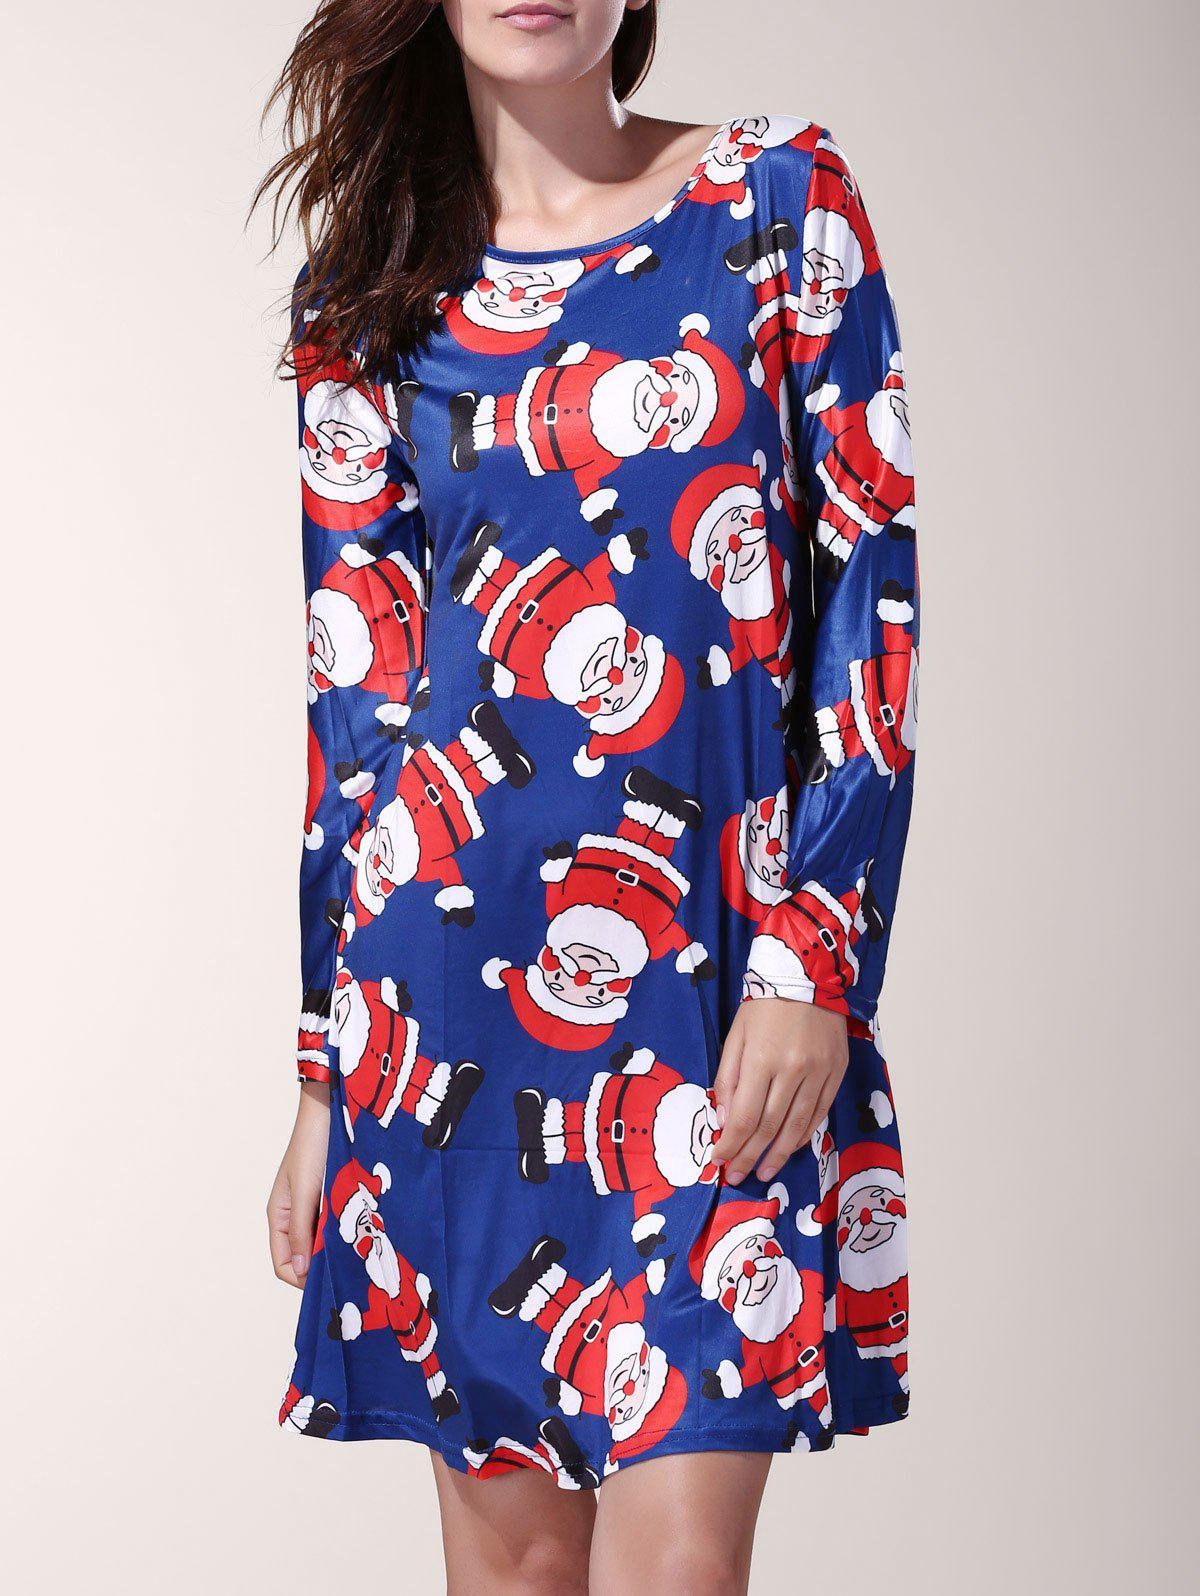 Shop Chic Long Sleeve Cartoon Santa Printed Mini Dress For Women